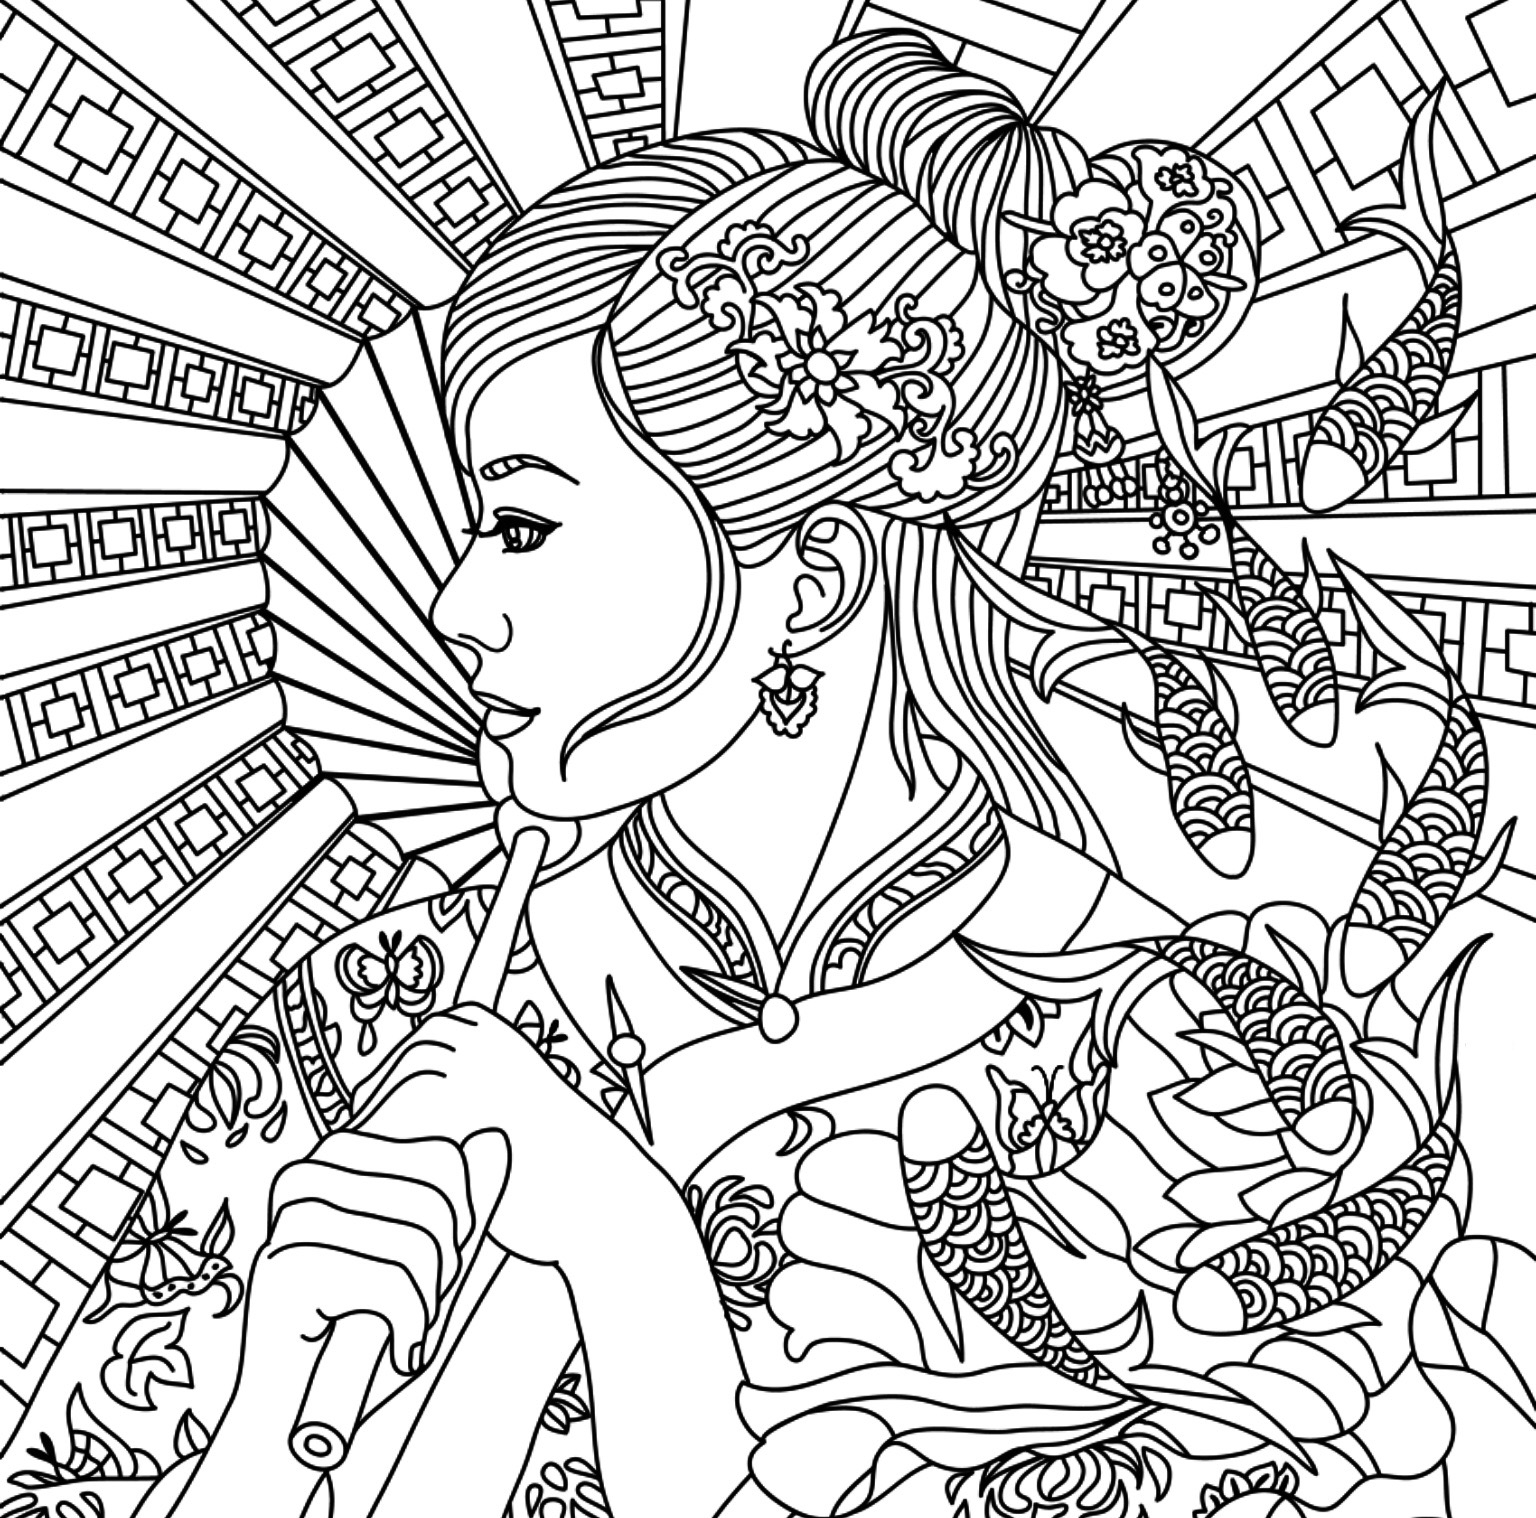 Full Size Coloring Pages For Adults At Getcolorings